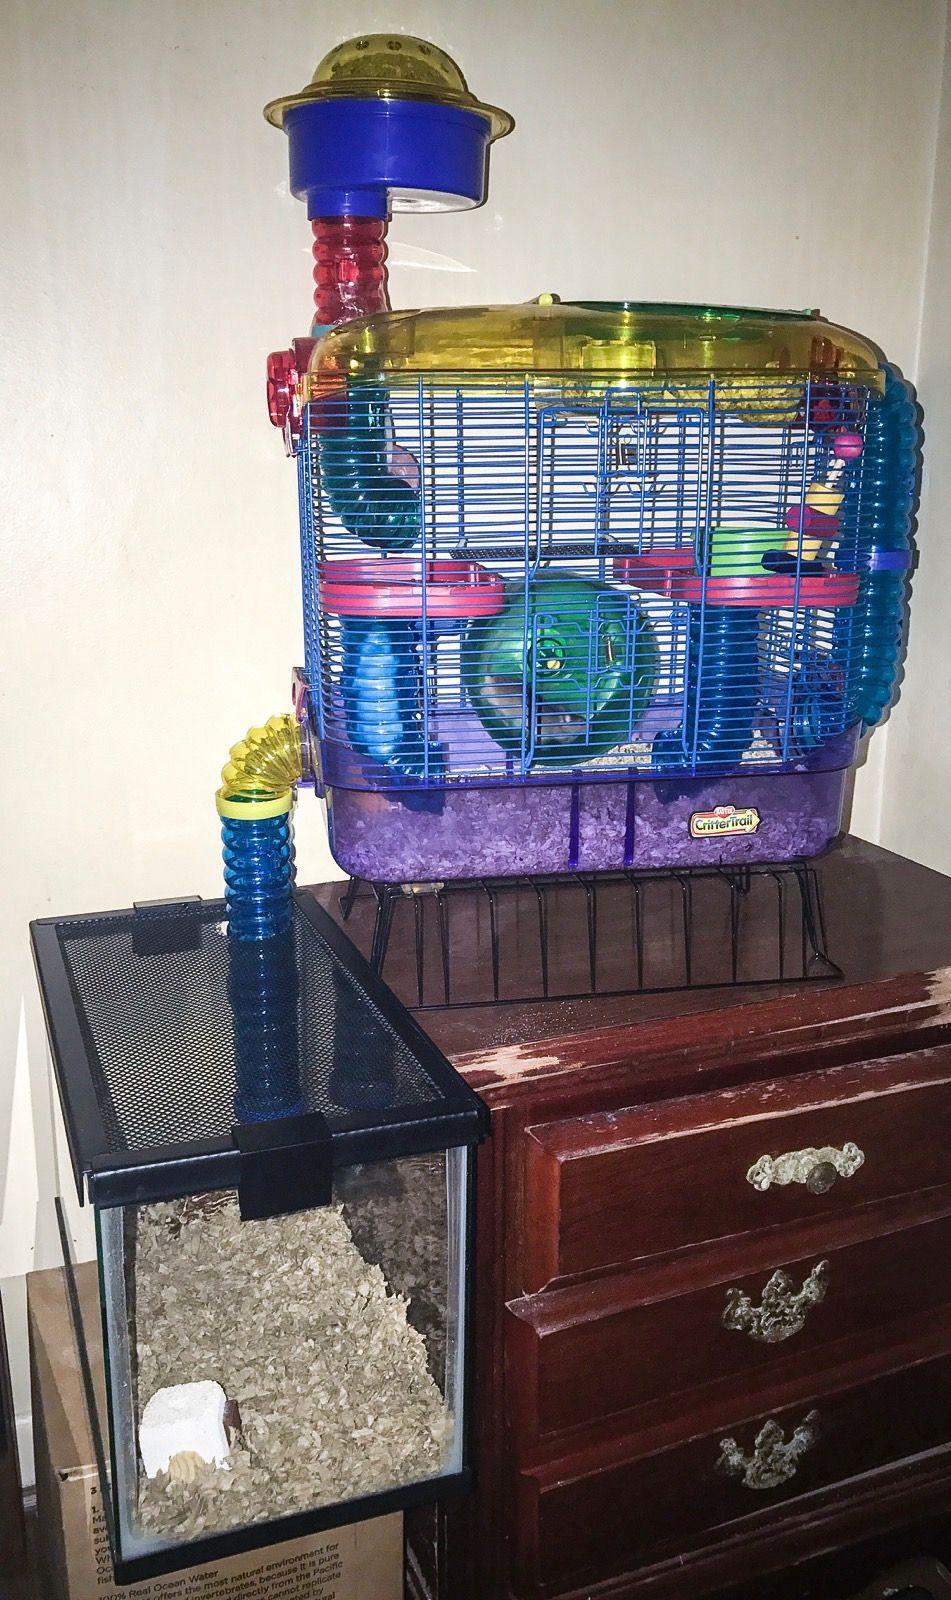 modified two level habitat crittertrail with add on tubes into a 5